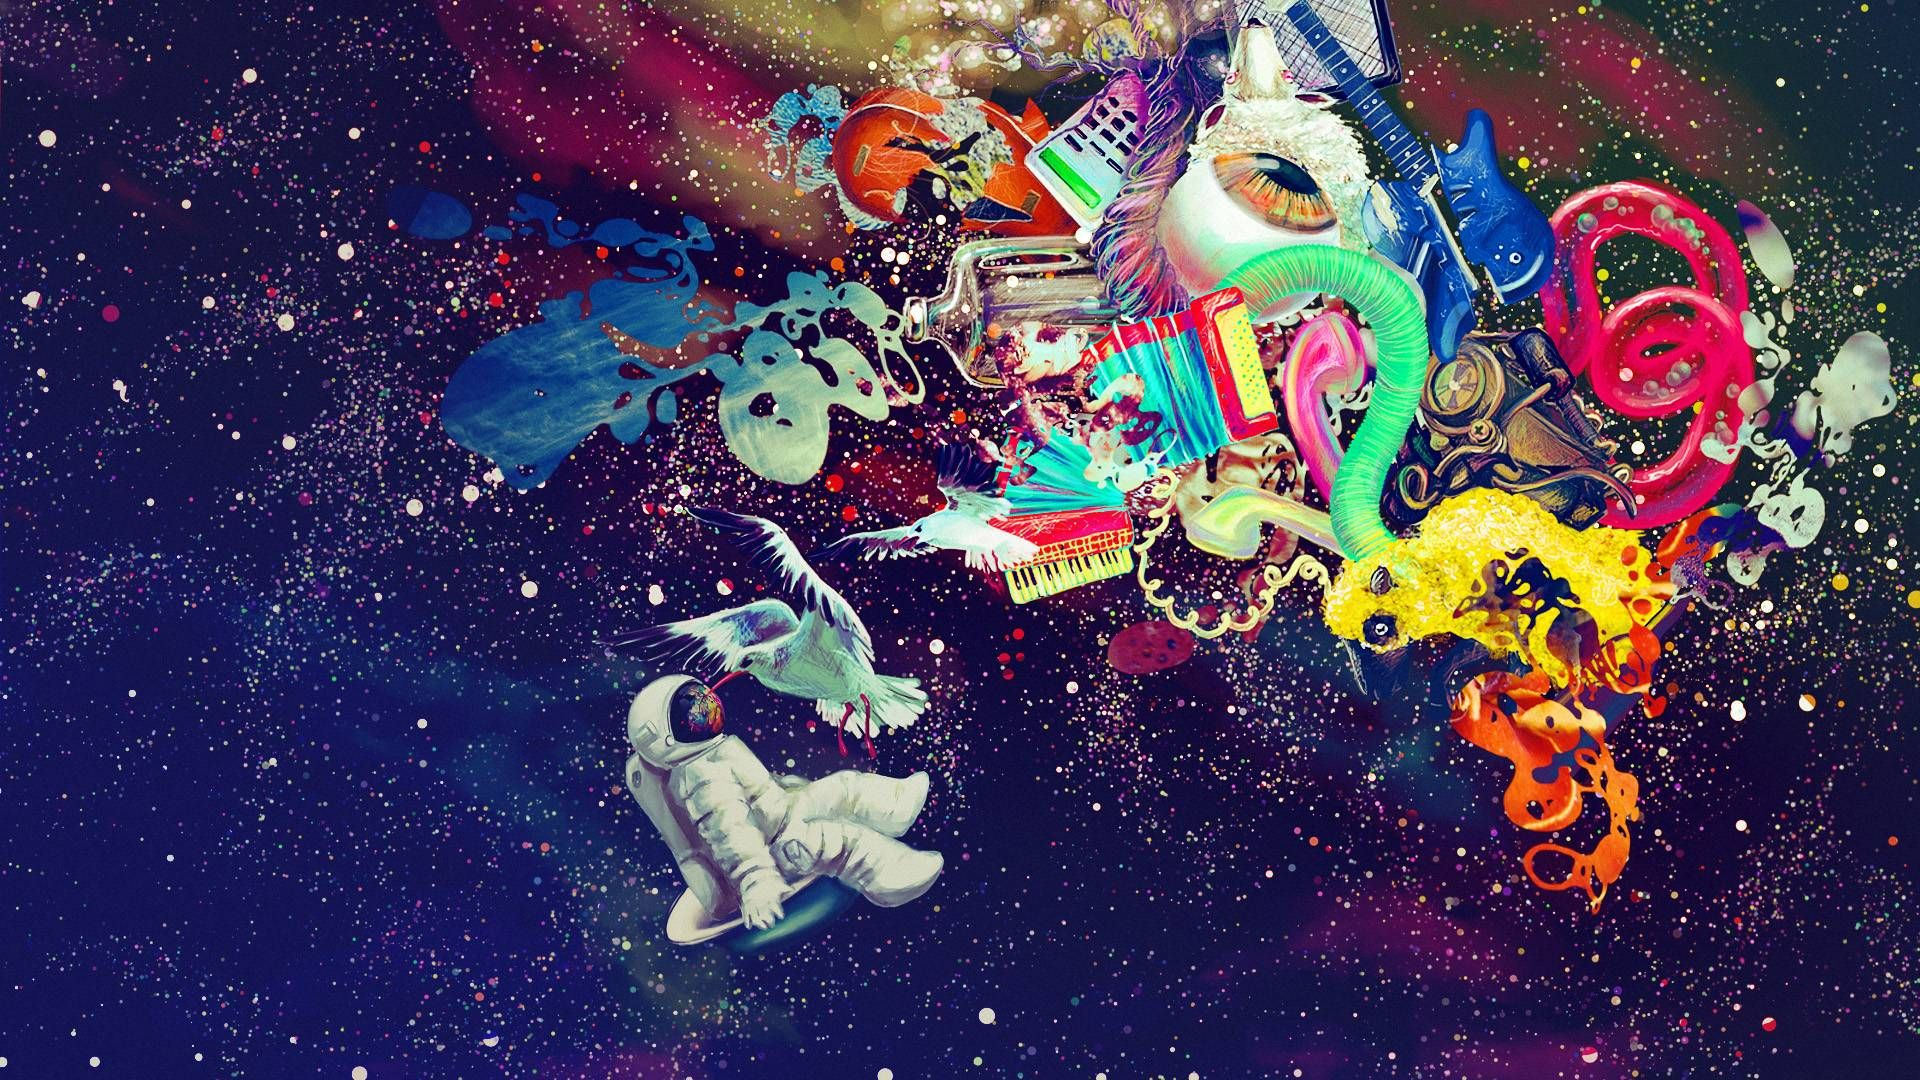 Wallpapers Trippy Wallpaper Psychedelic Space Trippy Iphone Wallpaper